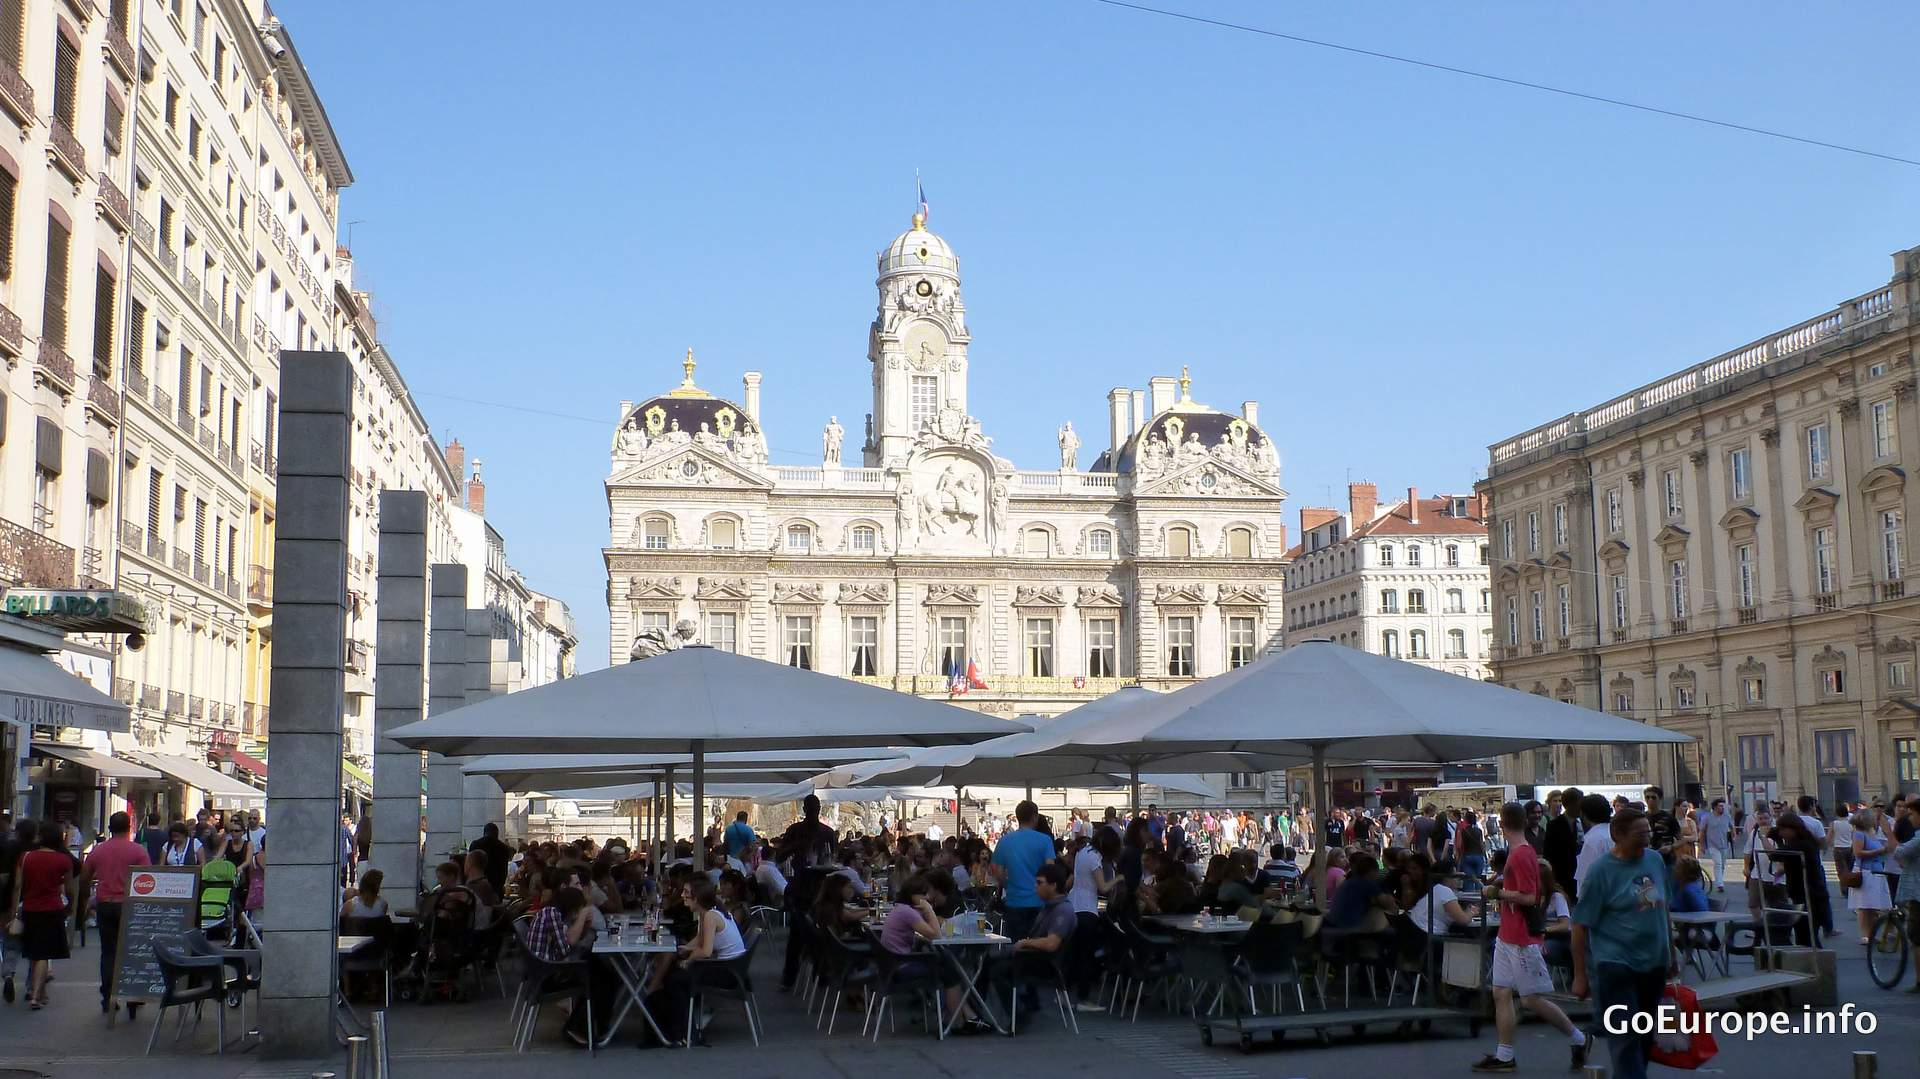 A lot of restaurants on the squares.